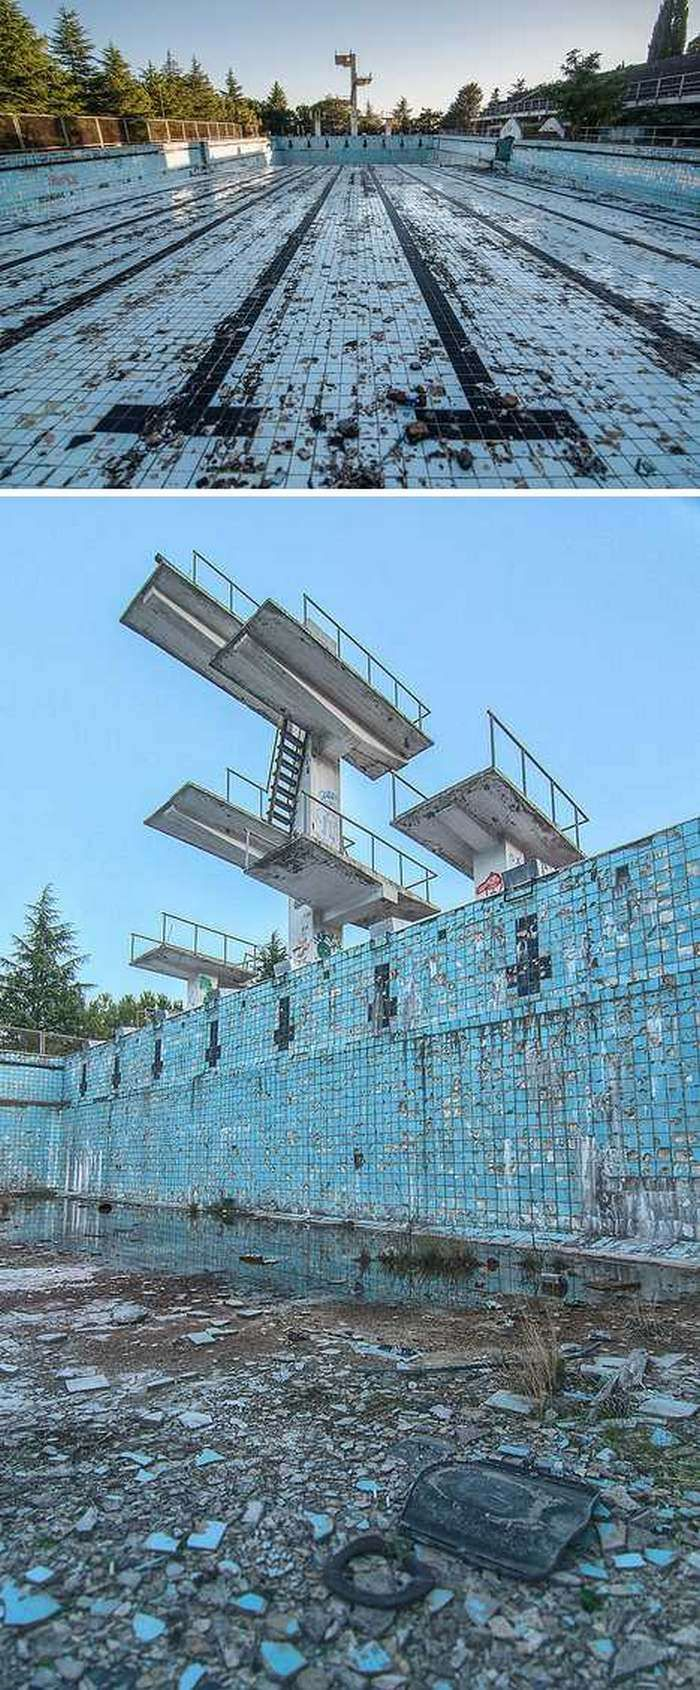 Top 10 Abandoned Swimming Pools | Travel Oven